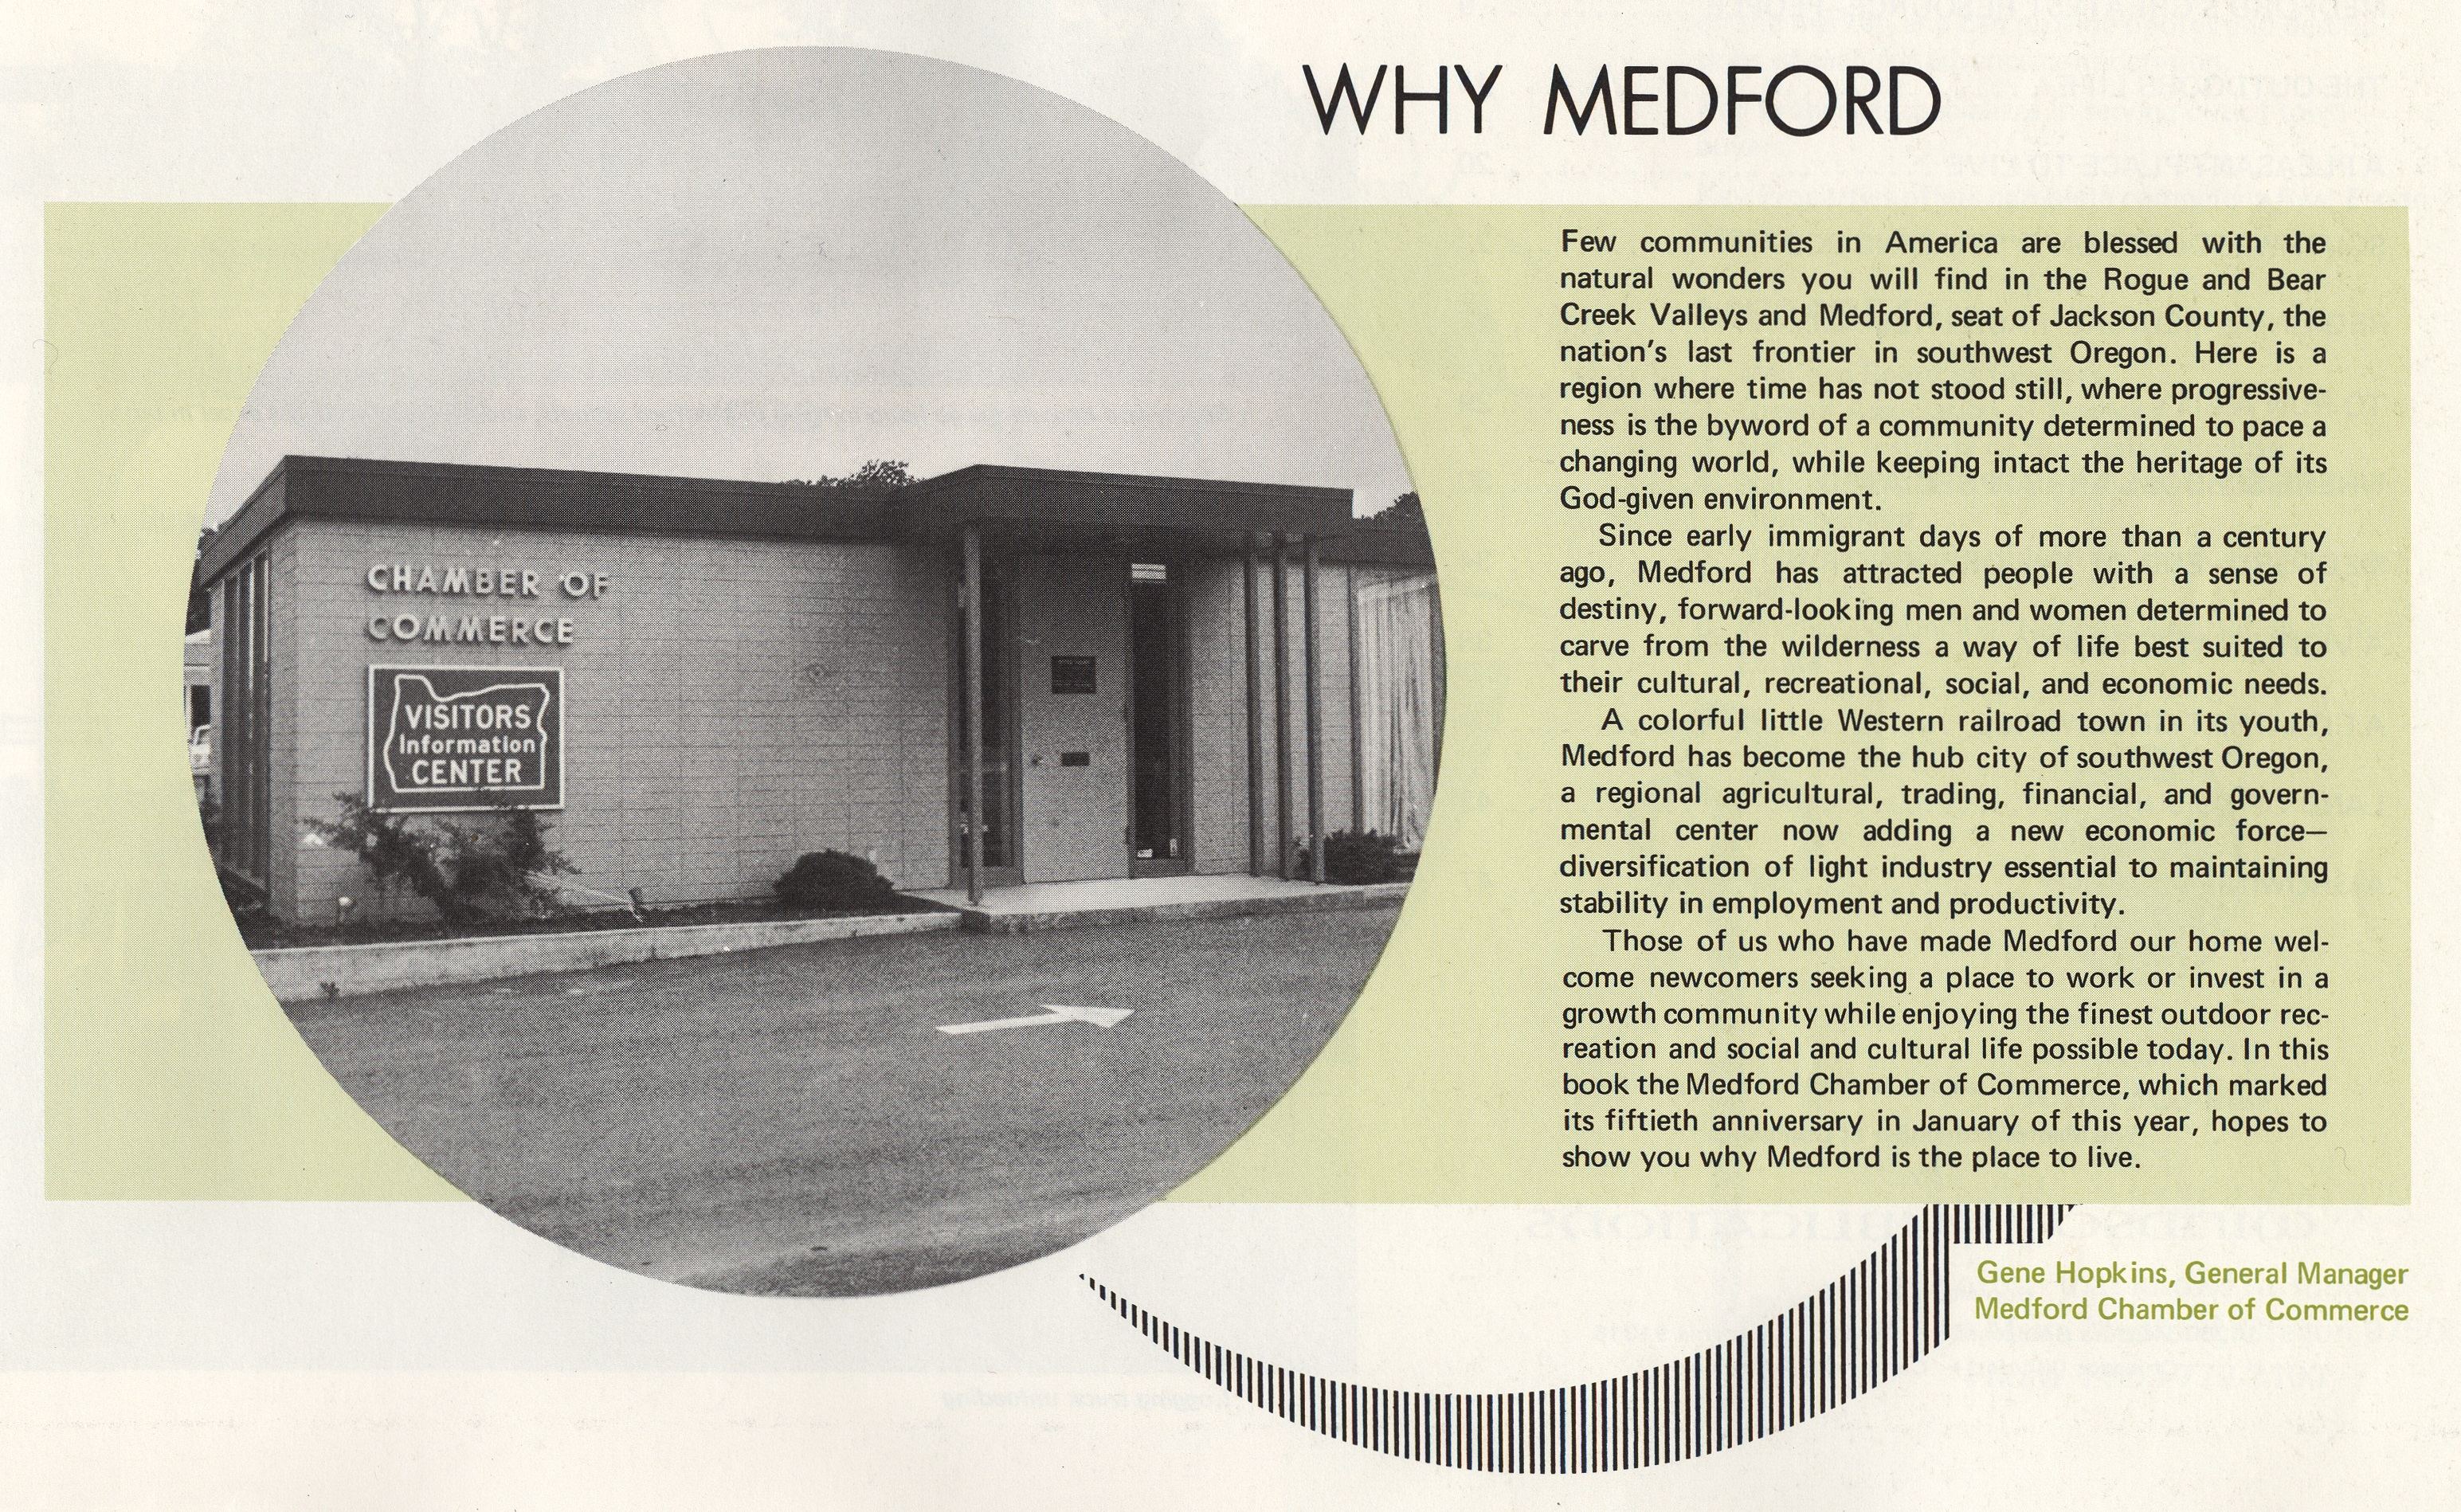 Notes on Medford Buildings